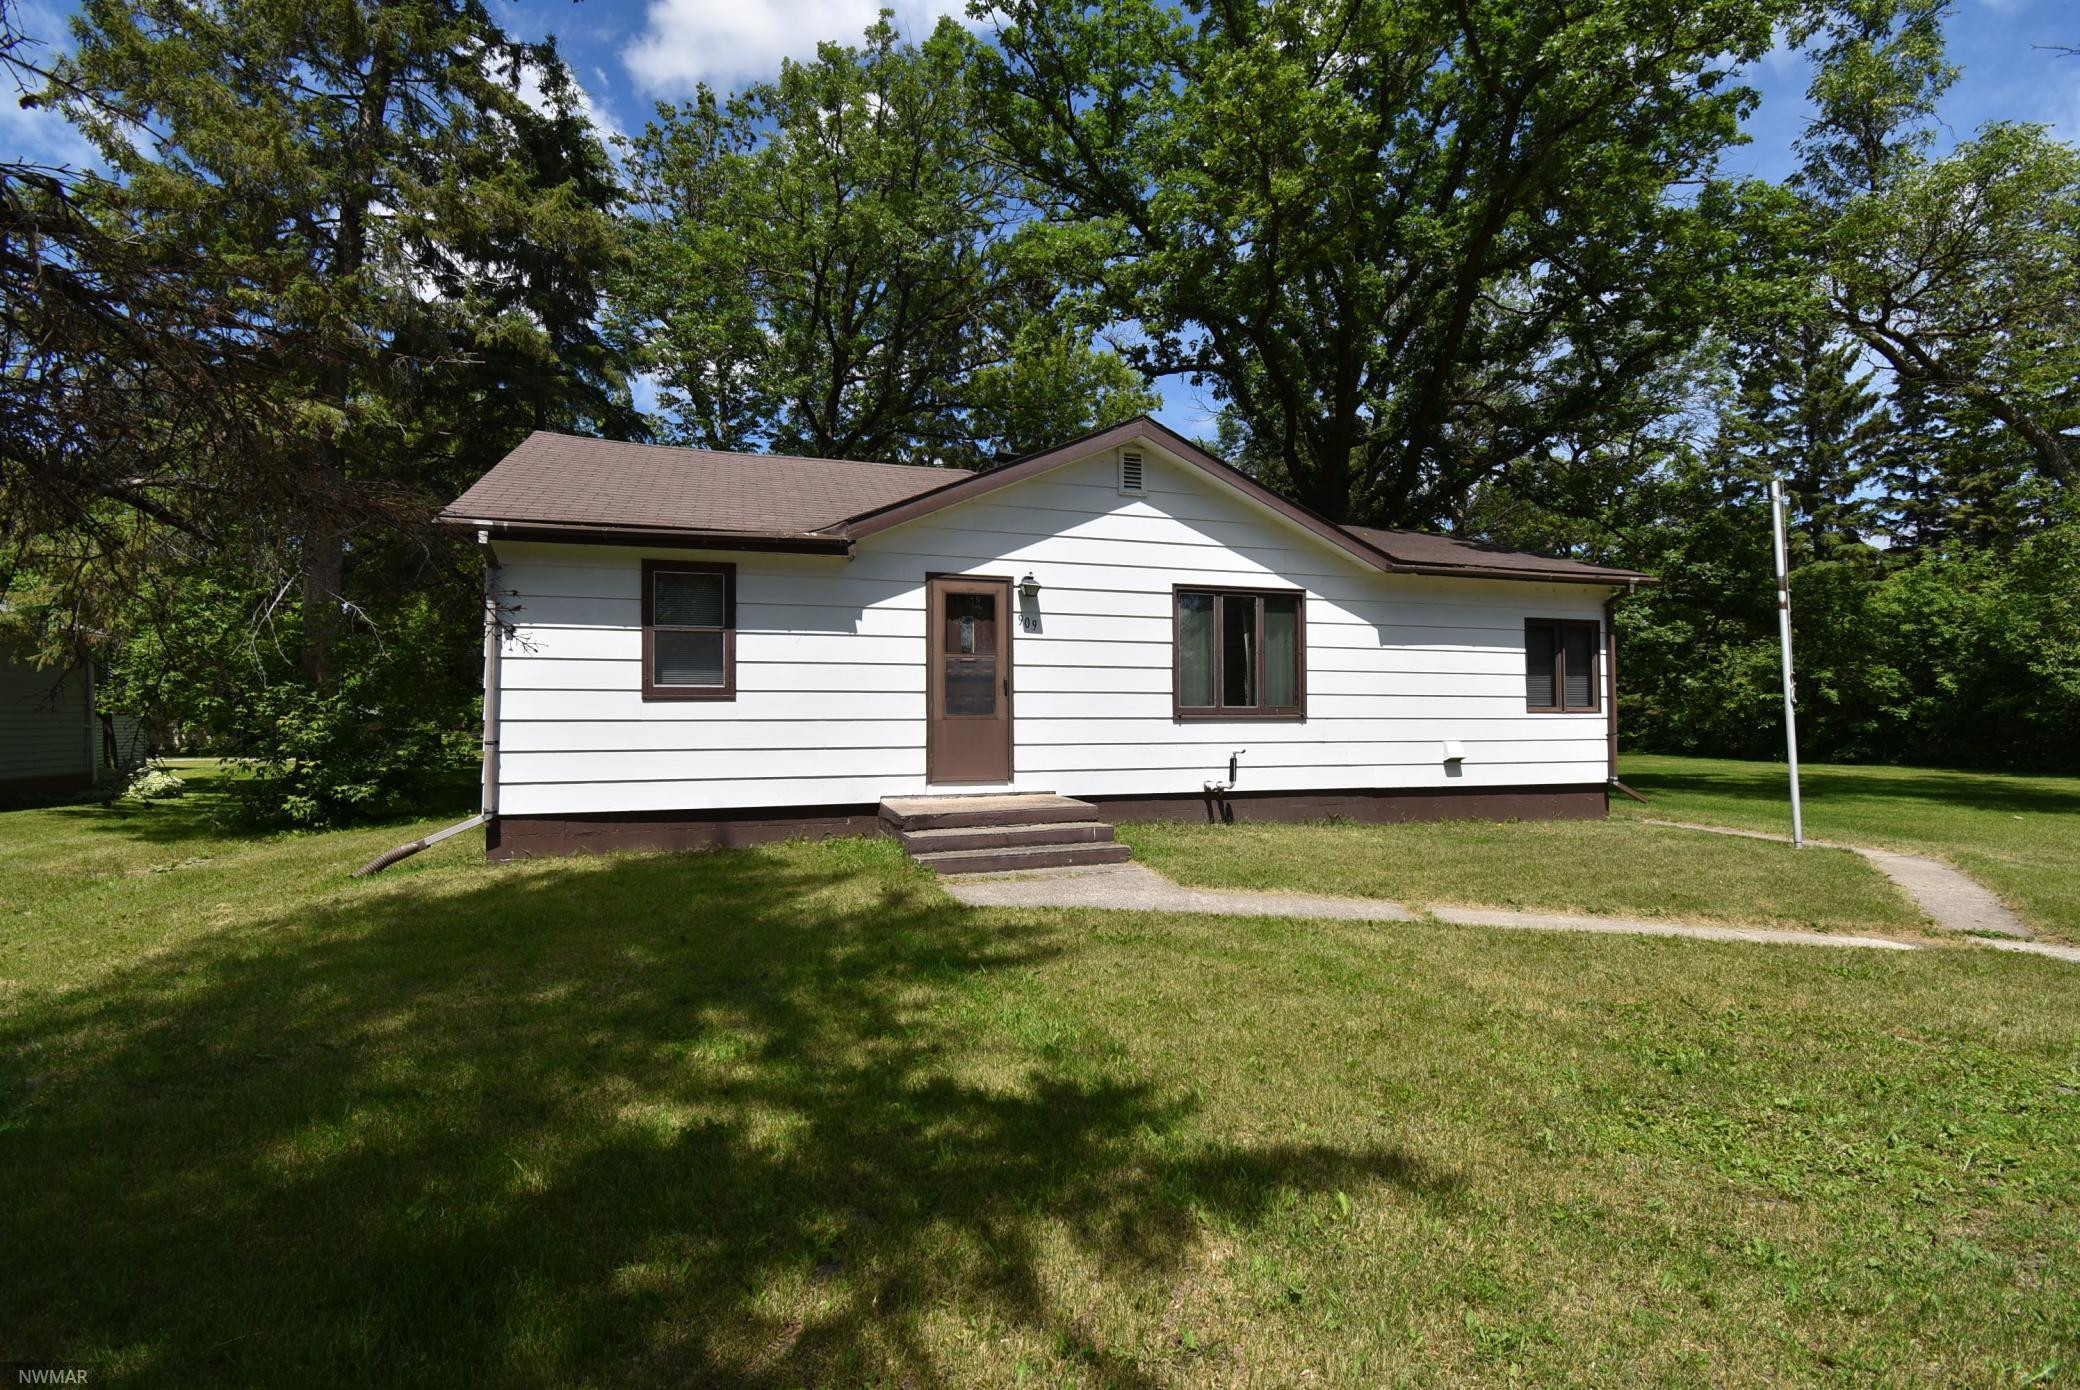 909 Lake Street NE, Warroad, MN 56763